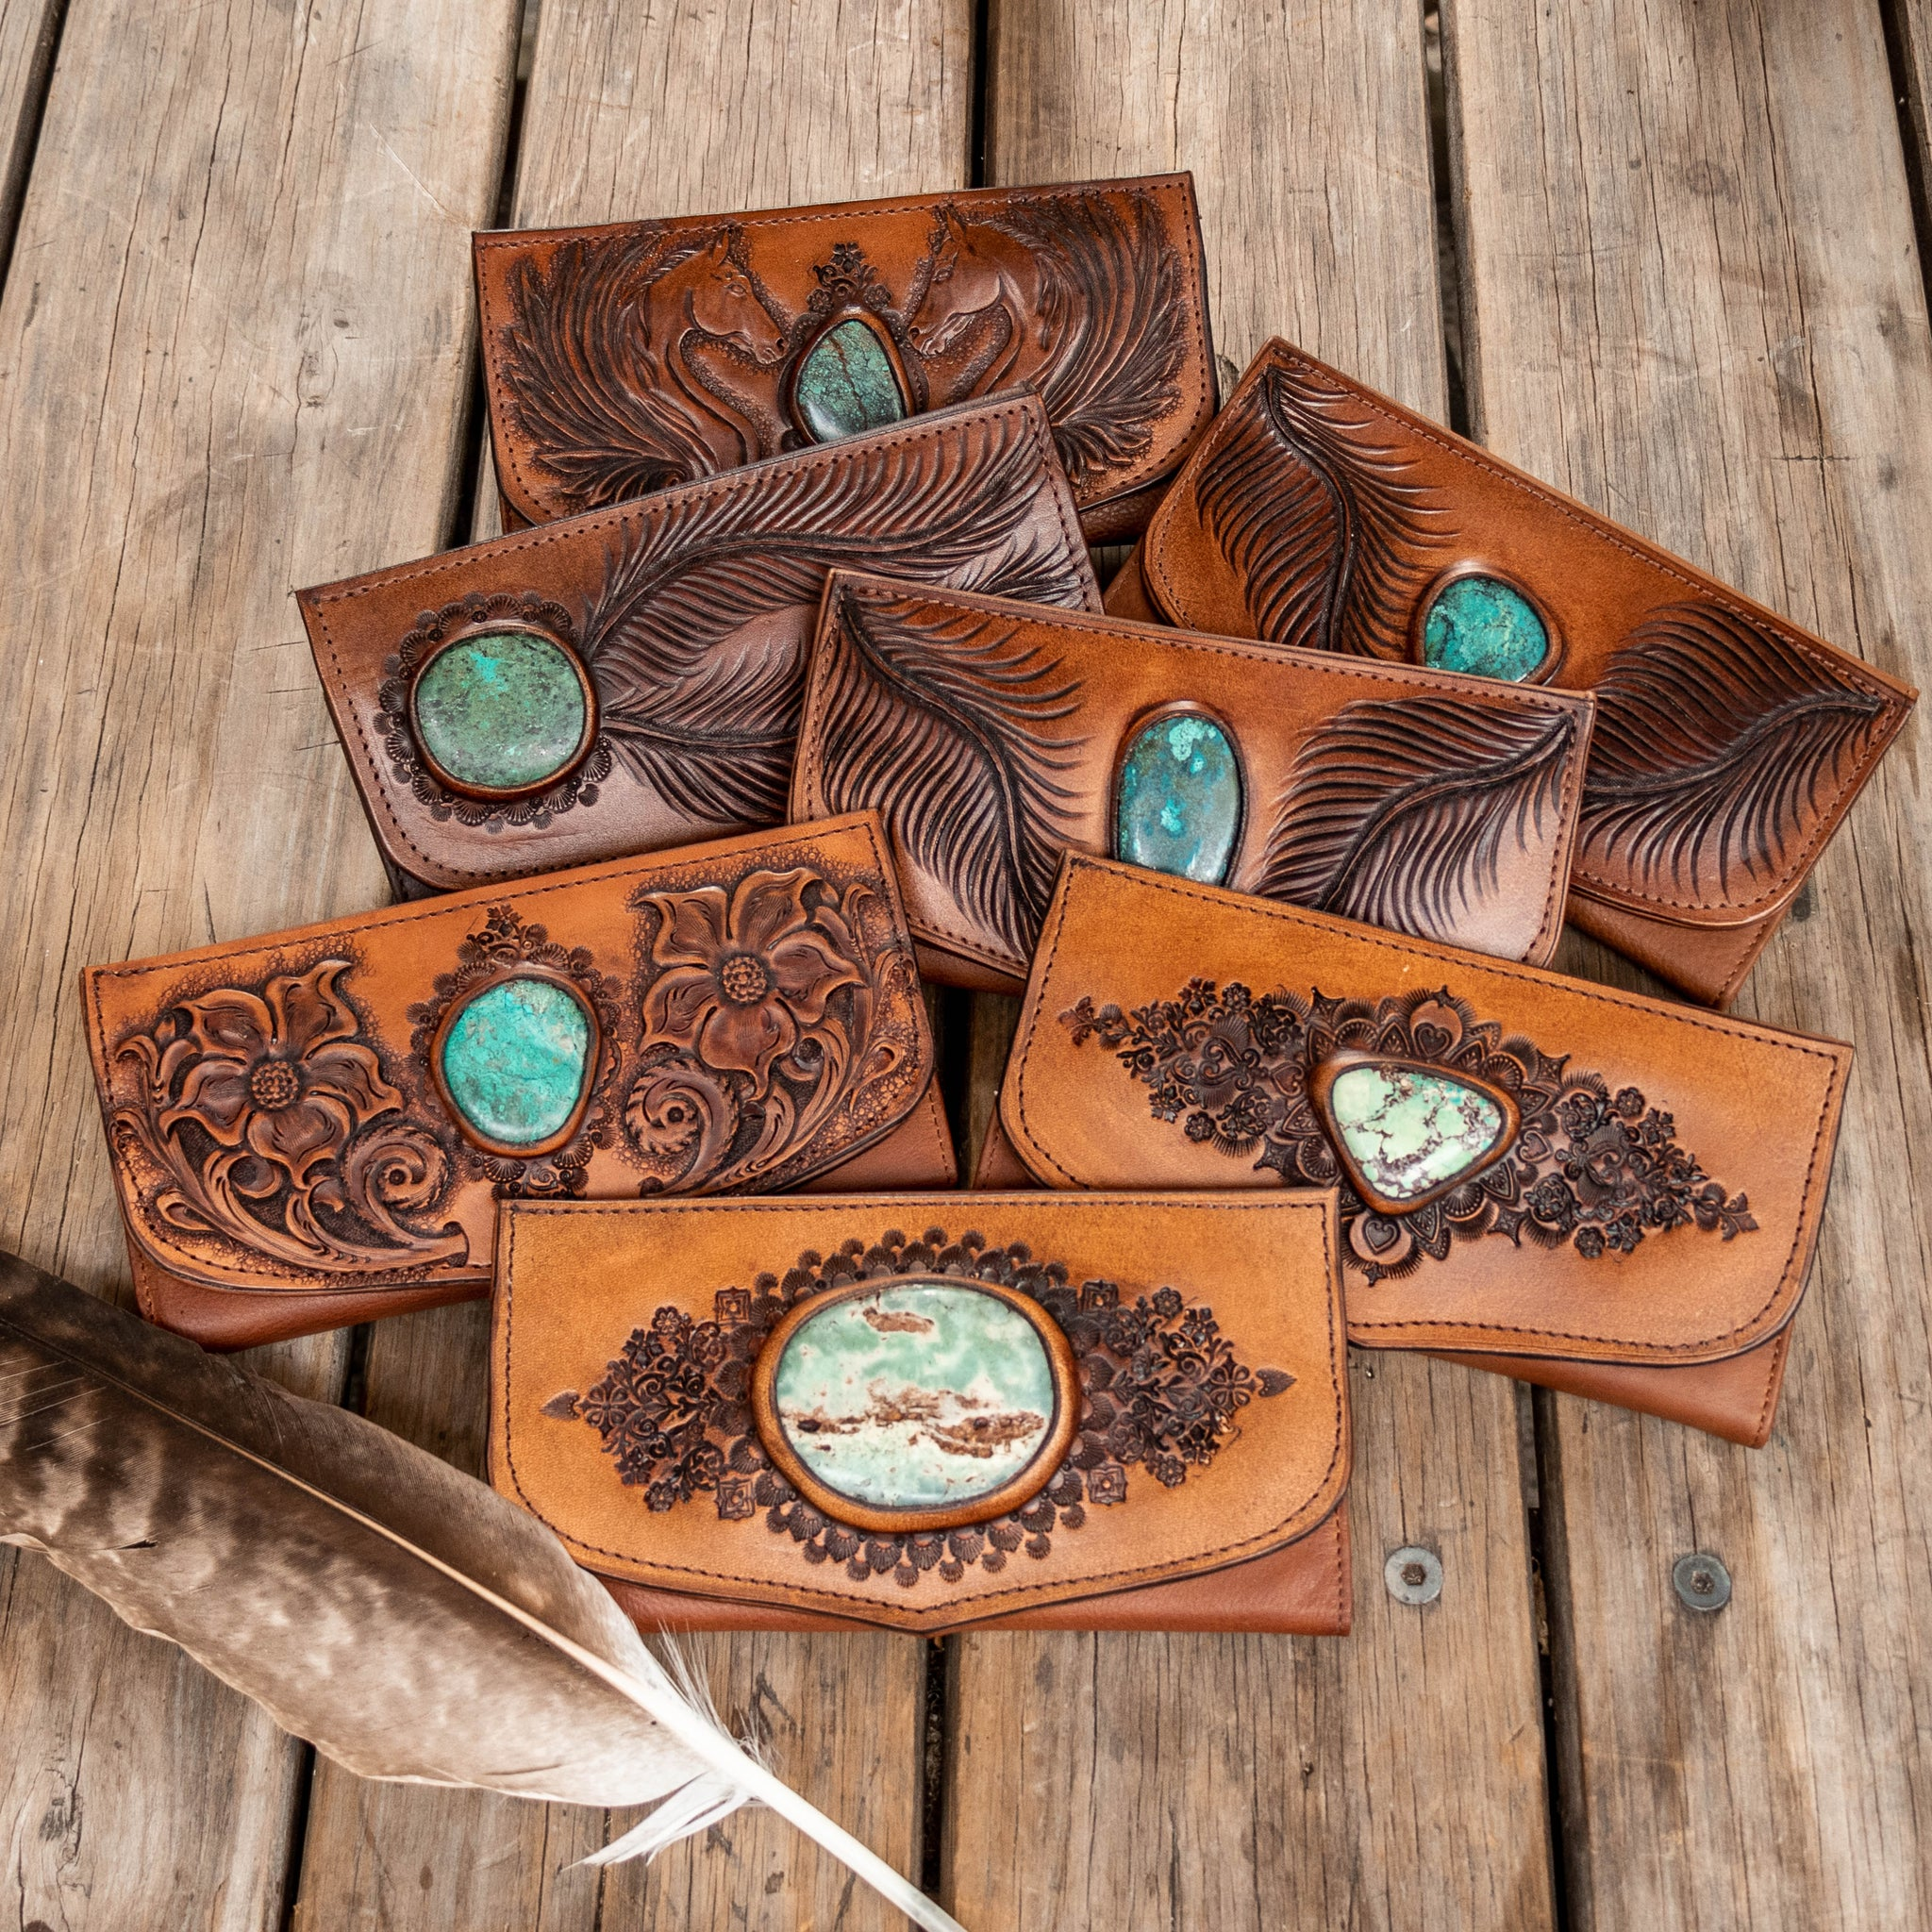 A selection of Buffalo Girl leather wallets with turquoise stones